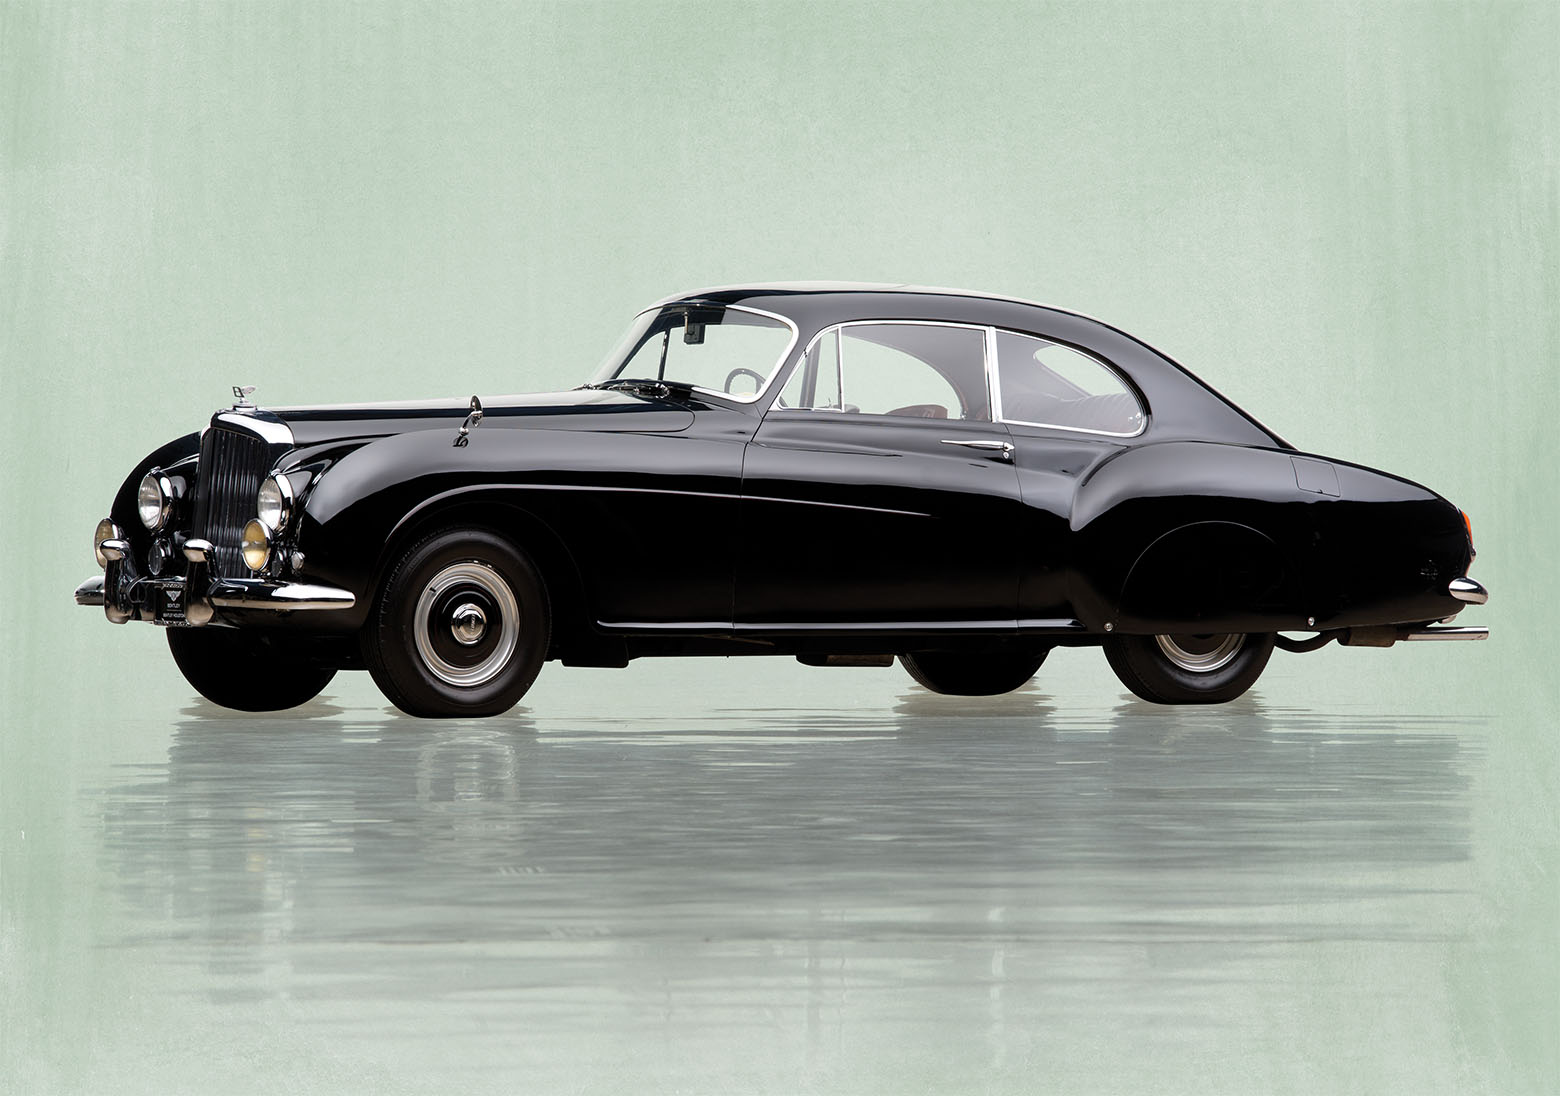 bentley r type continental preto lateral